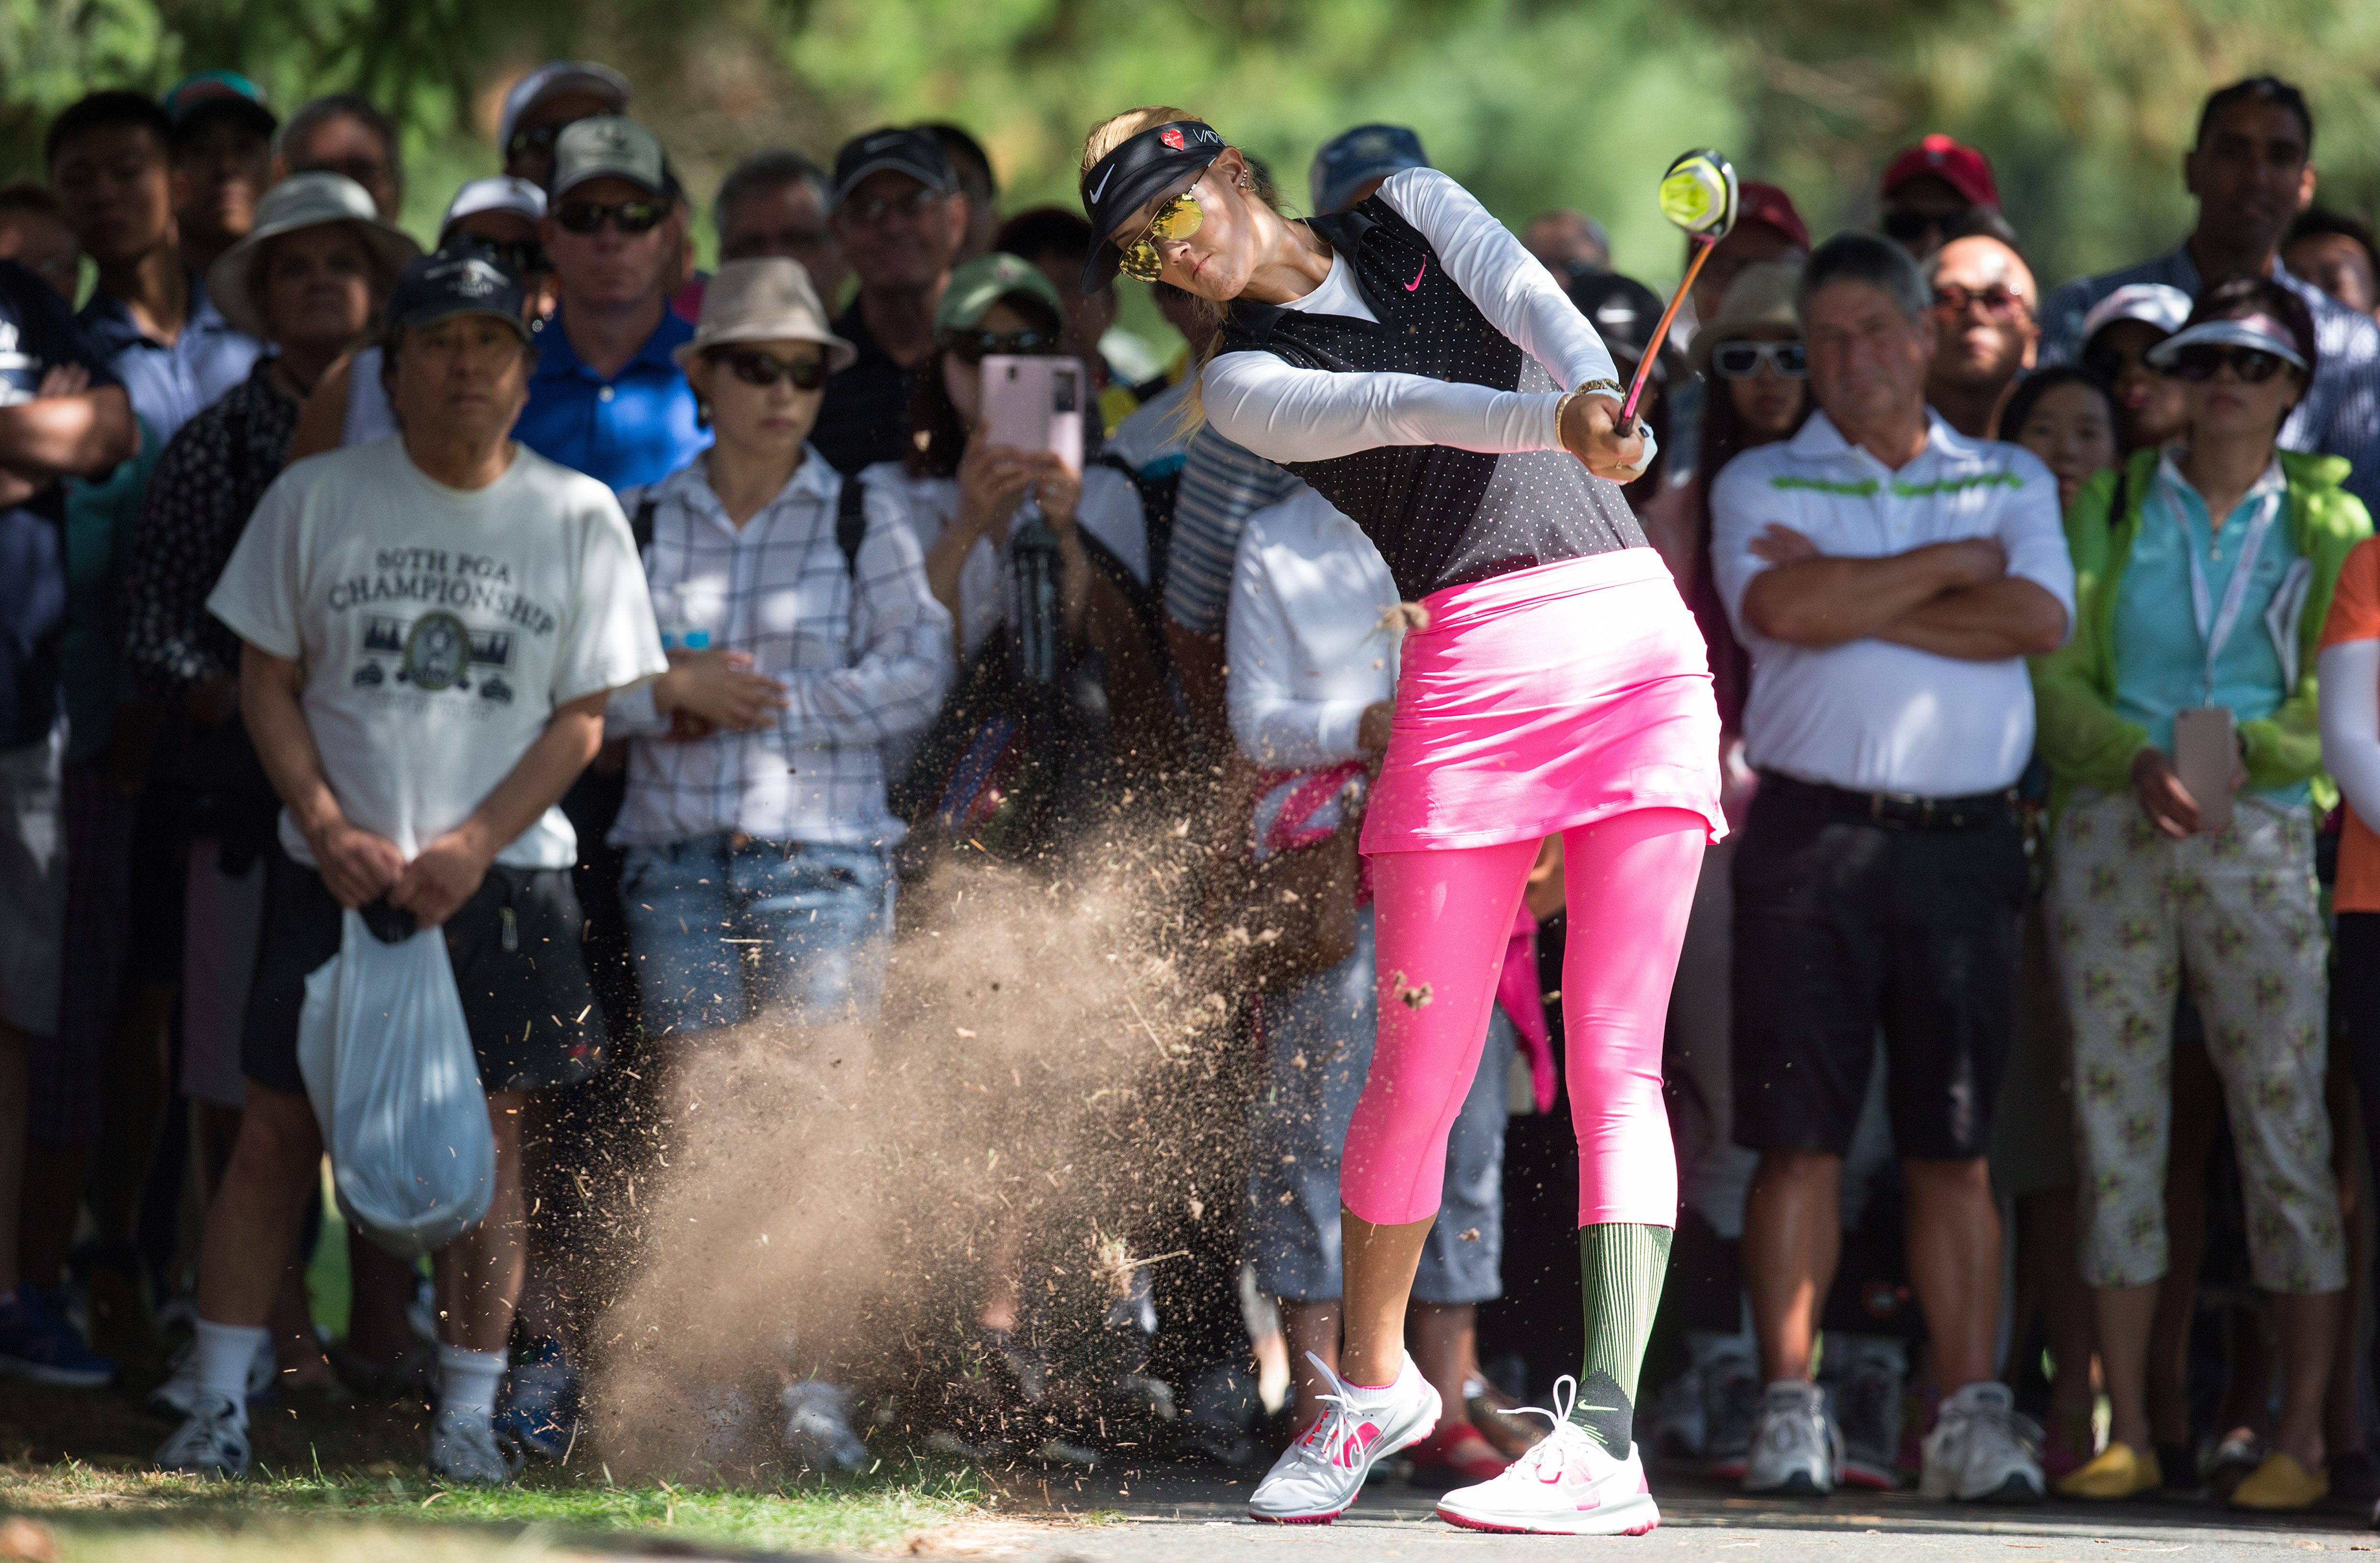 Michelle Wie, of the United States, hits her second shot out of the rough beside a cart path on the sixth hole during the second round of the Canadian Open golf tournament at the Vancouver Golf Club in Coquitlam, British Columbia, Friday, Aug. 21, 2015. (